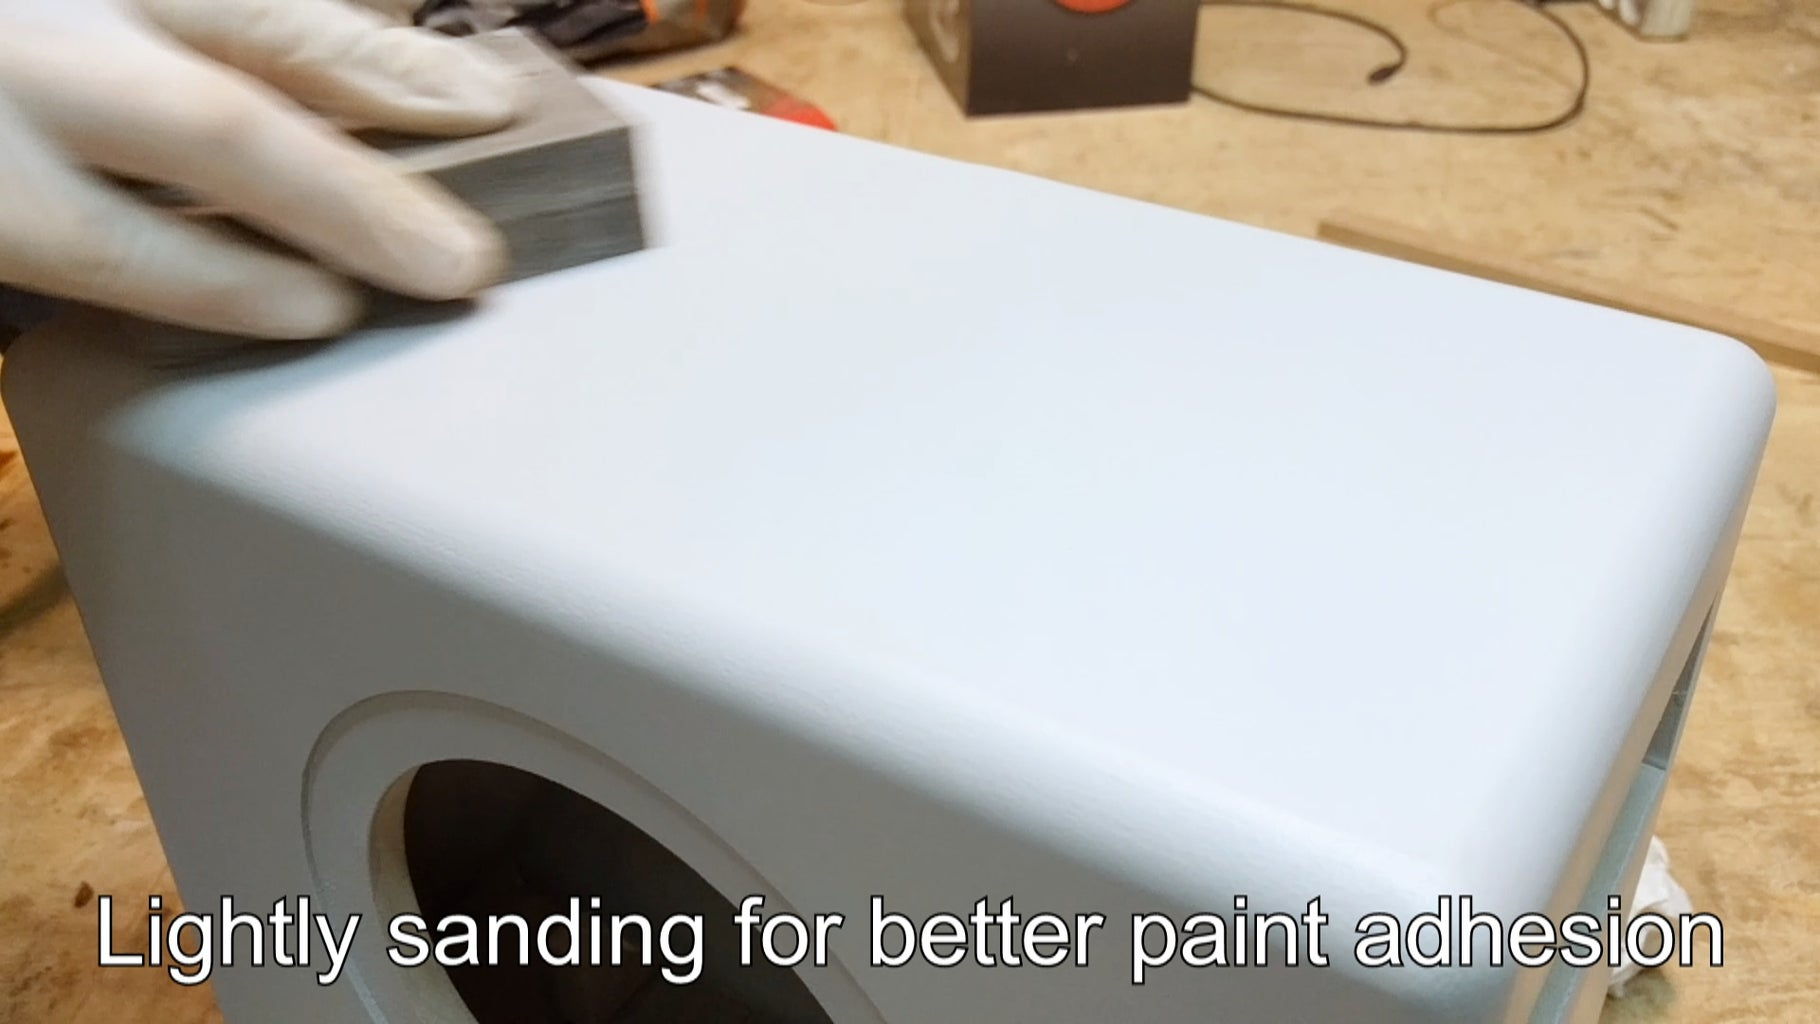 Applying the Paint